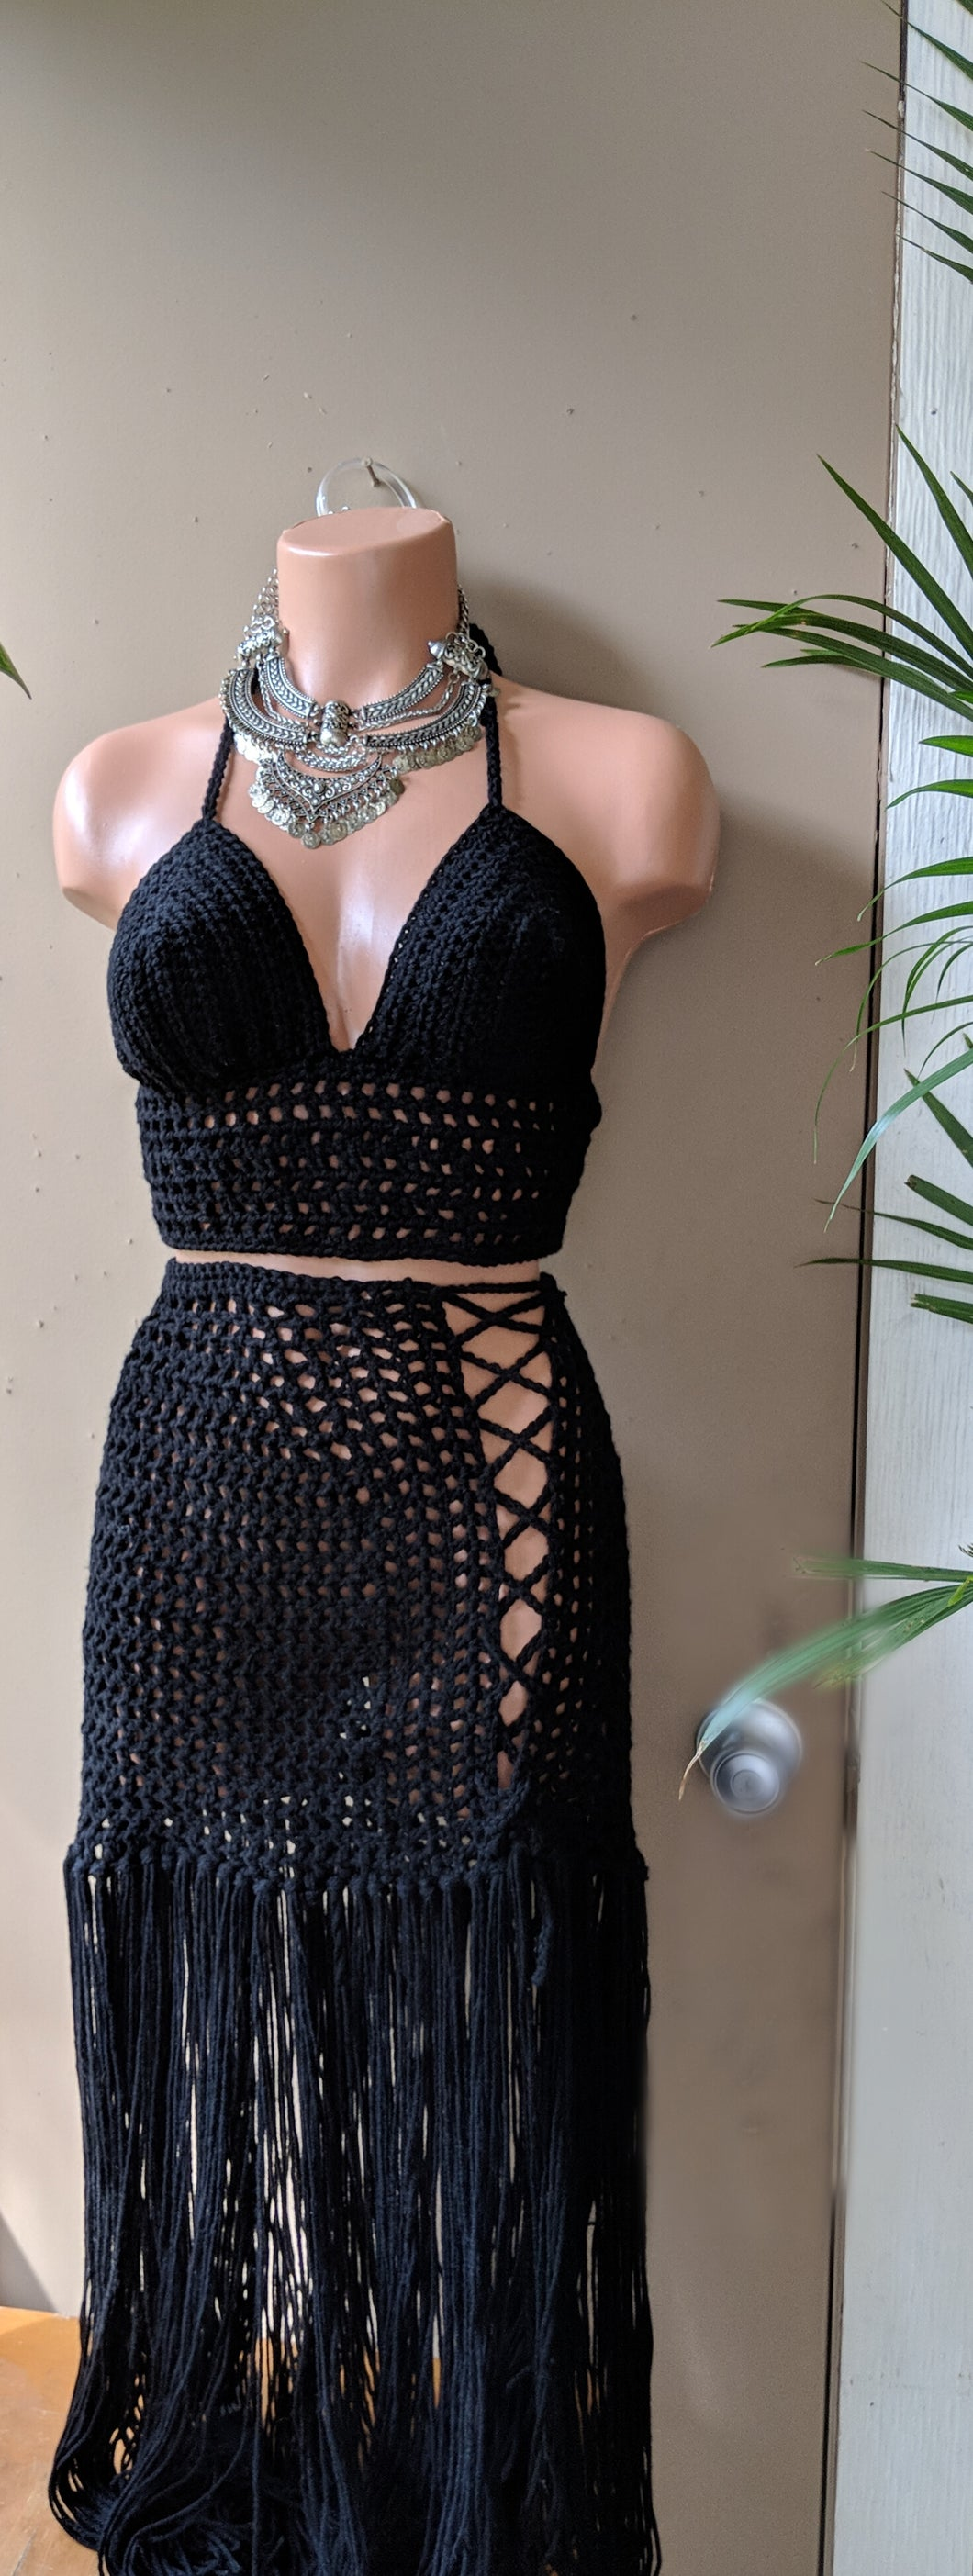 Black Crochet bralette, bikini top , crochet halter top, crochet crop top, Festival color, bohochic, bohemian clothing